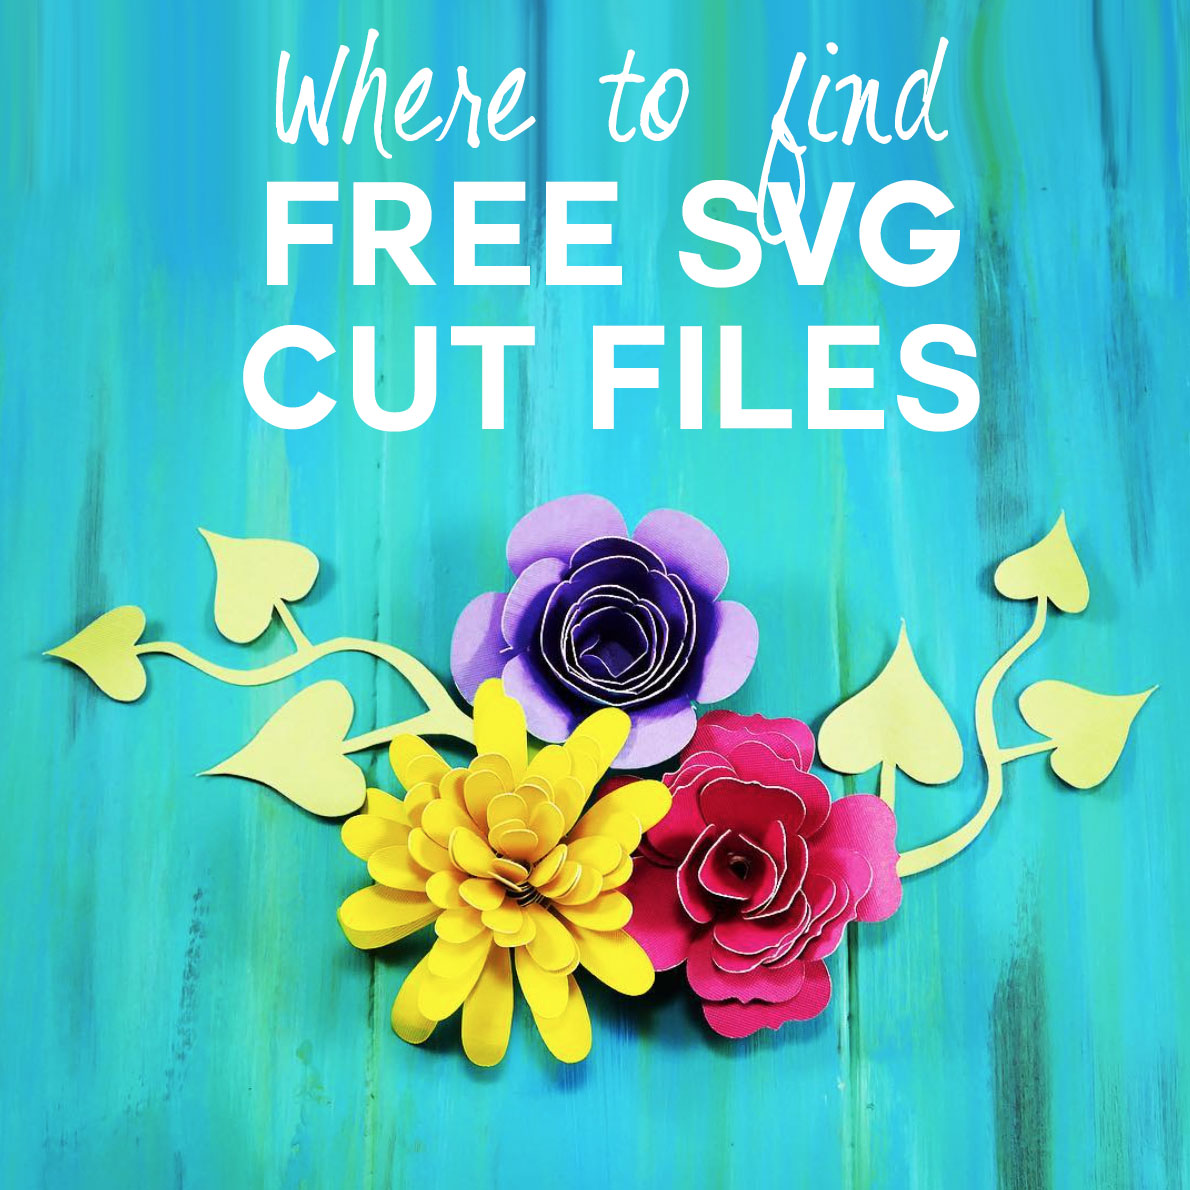 Free Svg Cut Files Where To Find The Best Designs